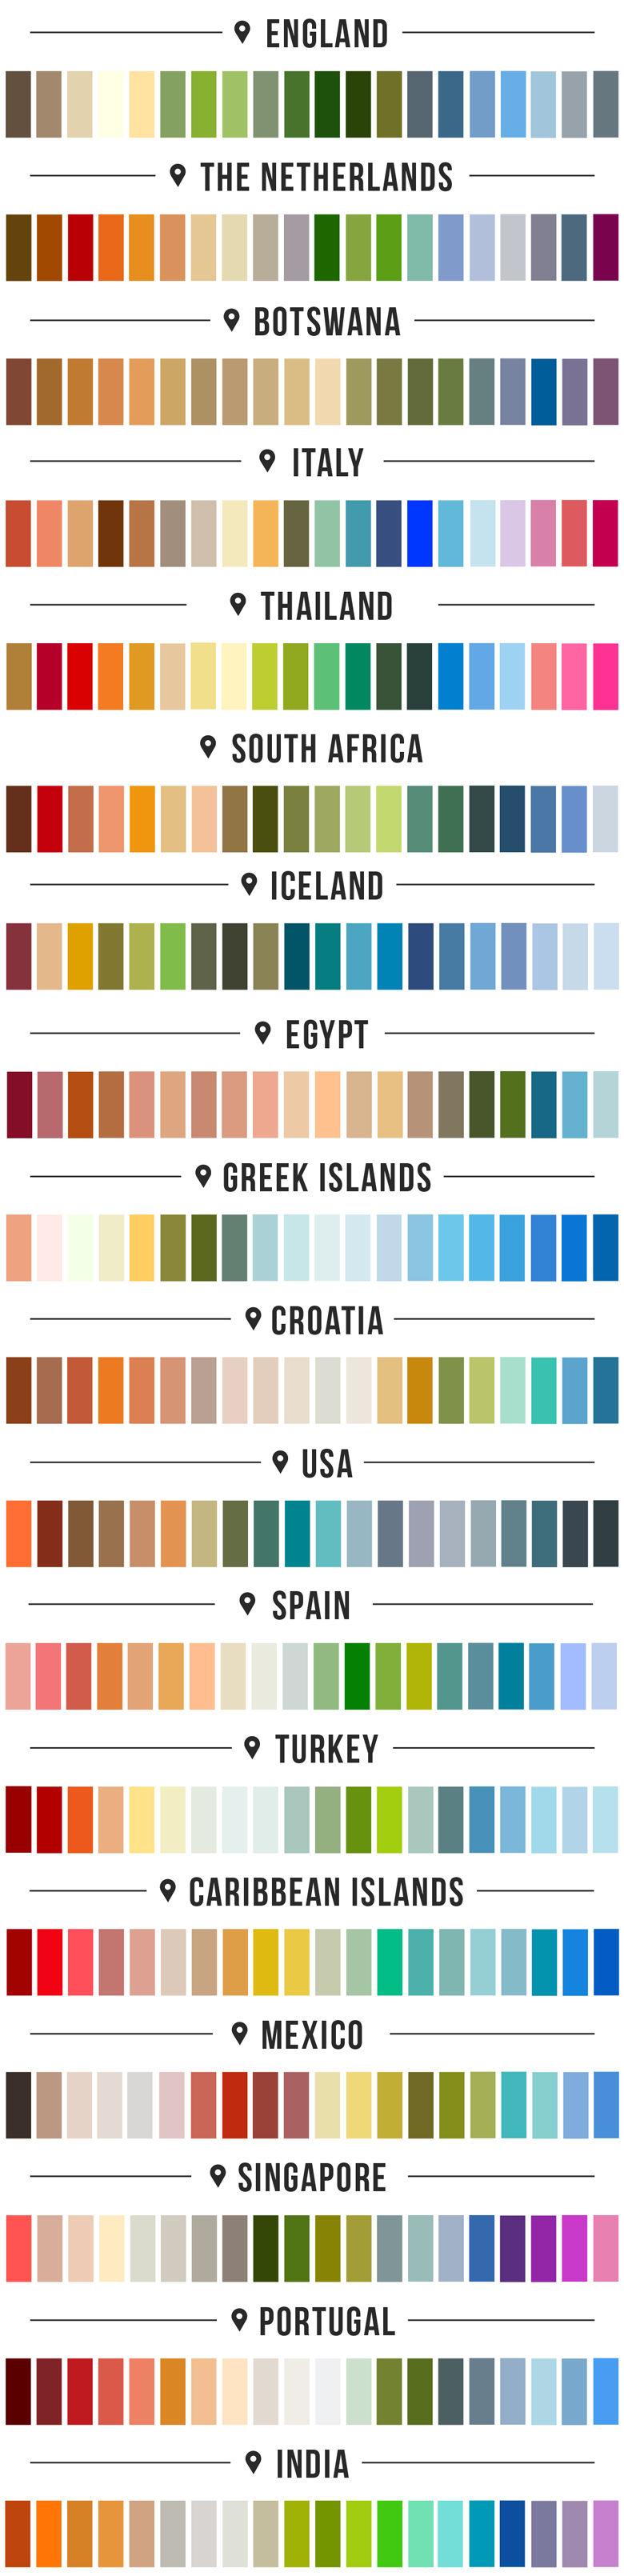 Colors of countries - All